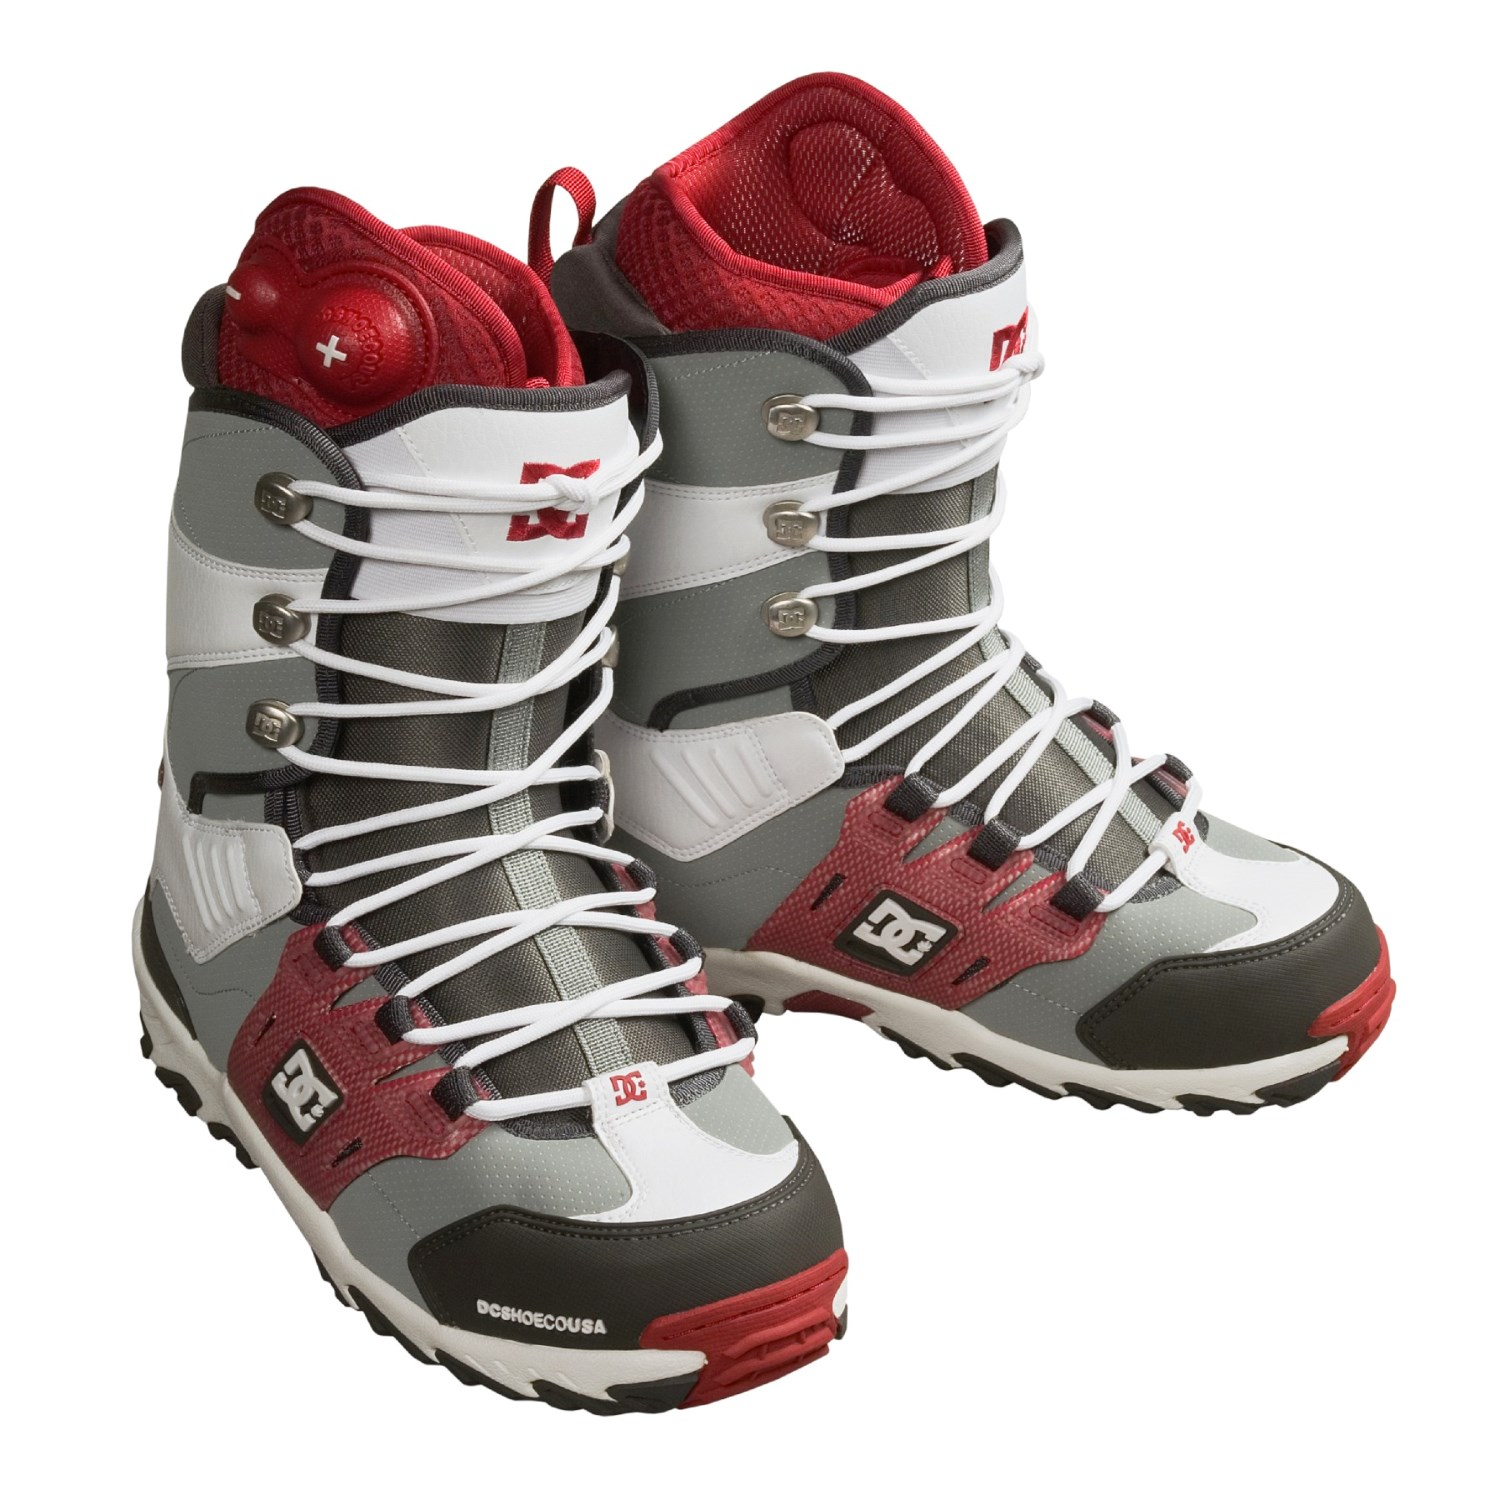 dc shoes phantom snowboard boots for 72695 save 77